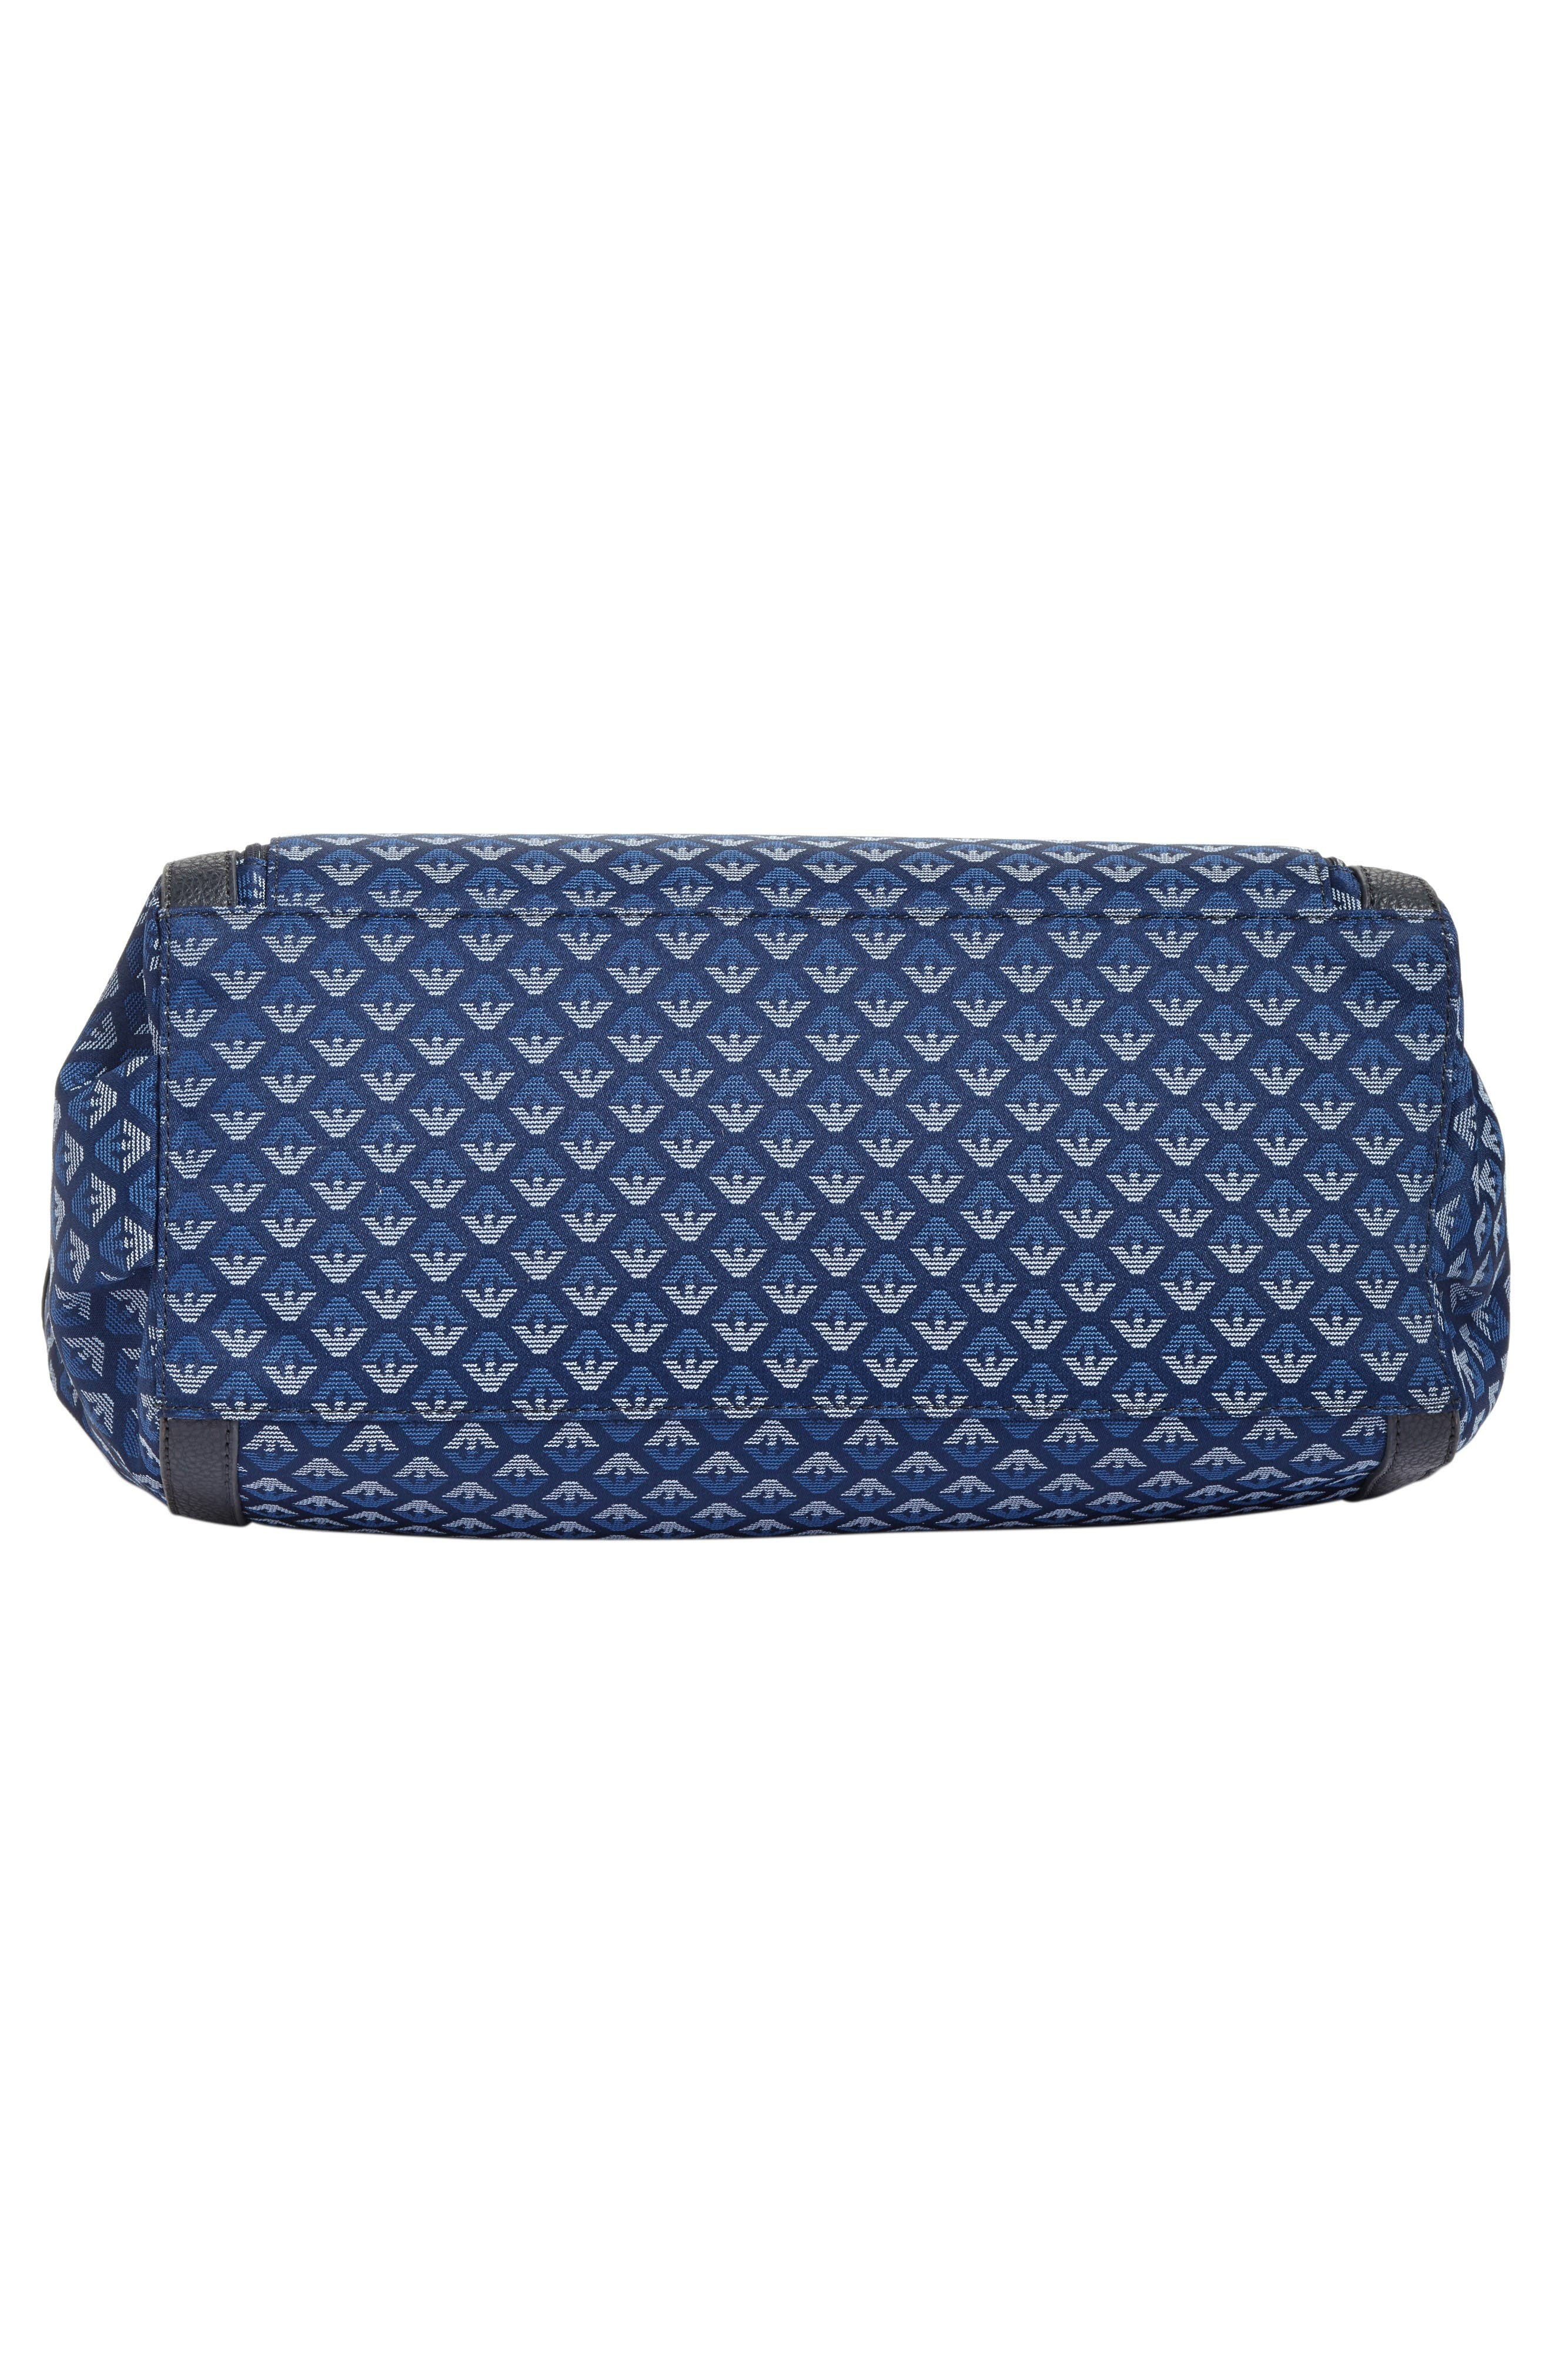 Logo Nylon Diaper Bag,                             Alternate thumbnail 6, color,                             Navy